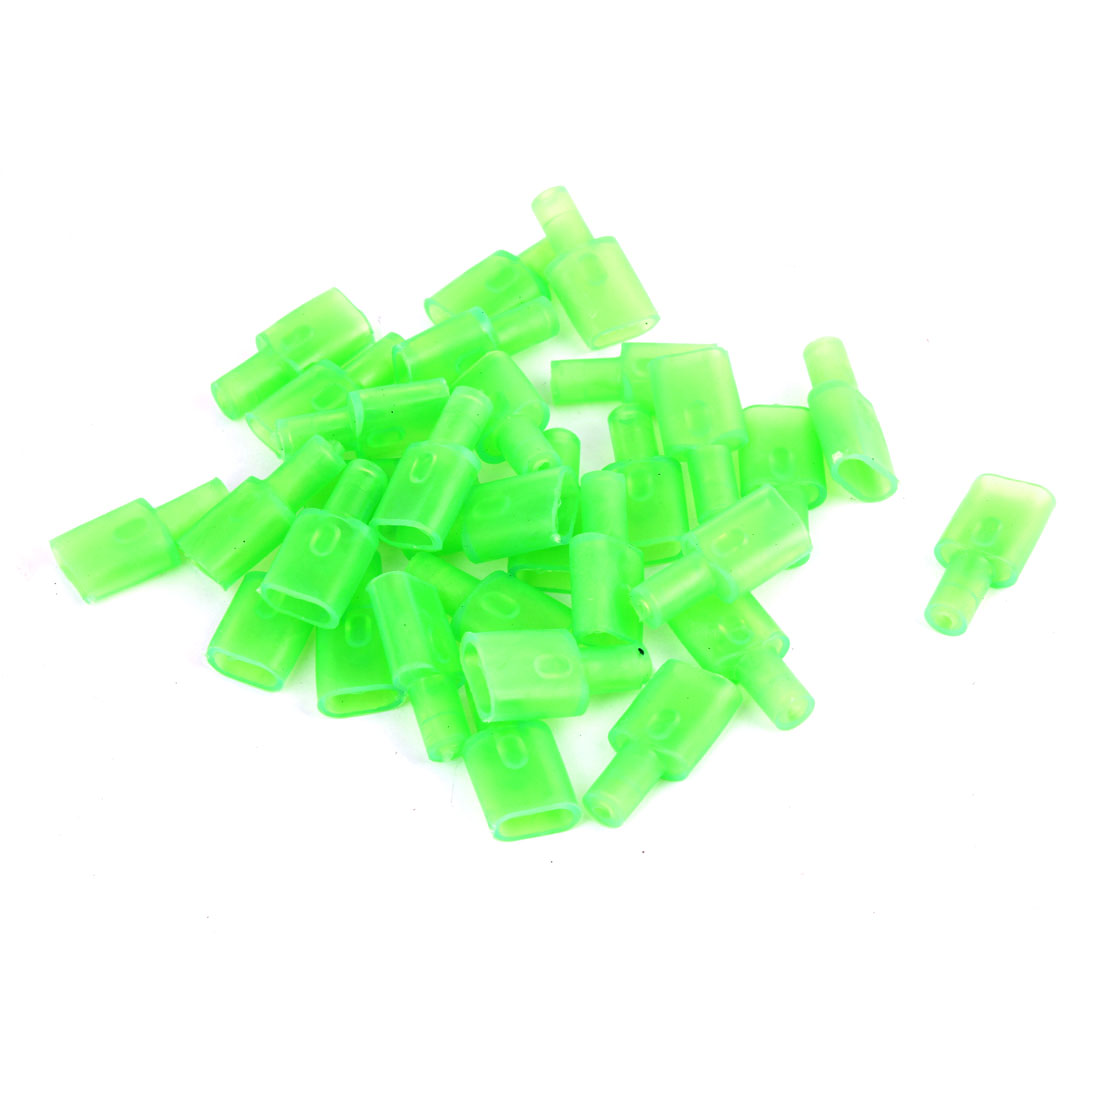 30 Pcs Green Soft PVC 7.8mm Wire Crimp Terminal End Insulated Sleeves Caps Cover